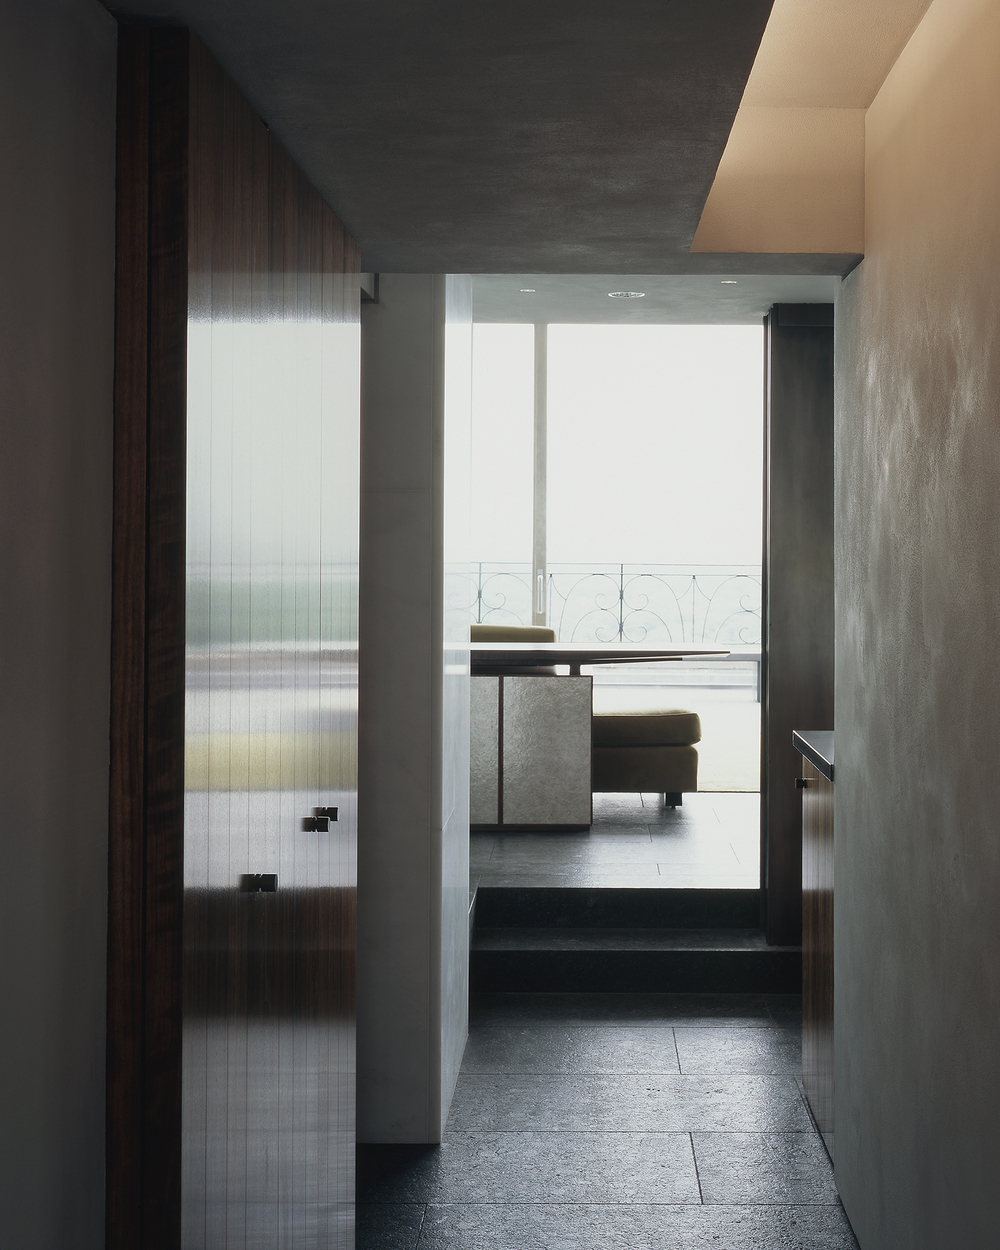 Tod Williams Billie Tsien Architects